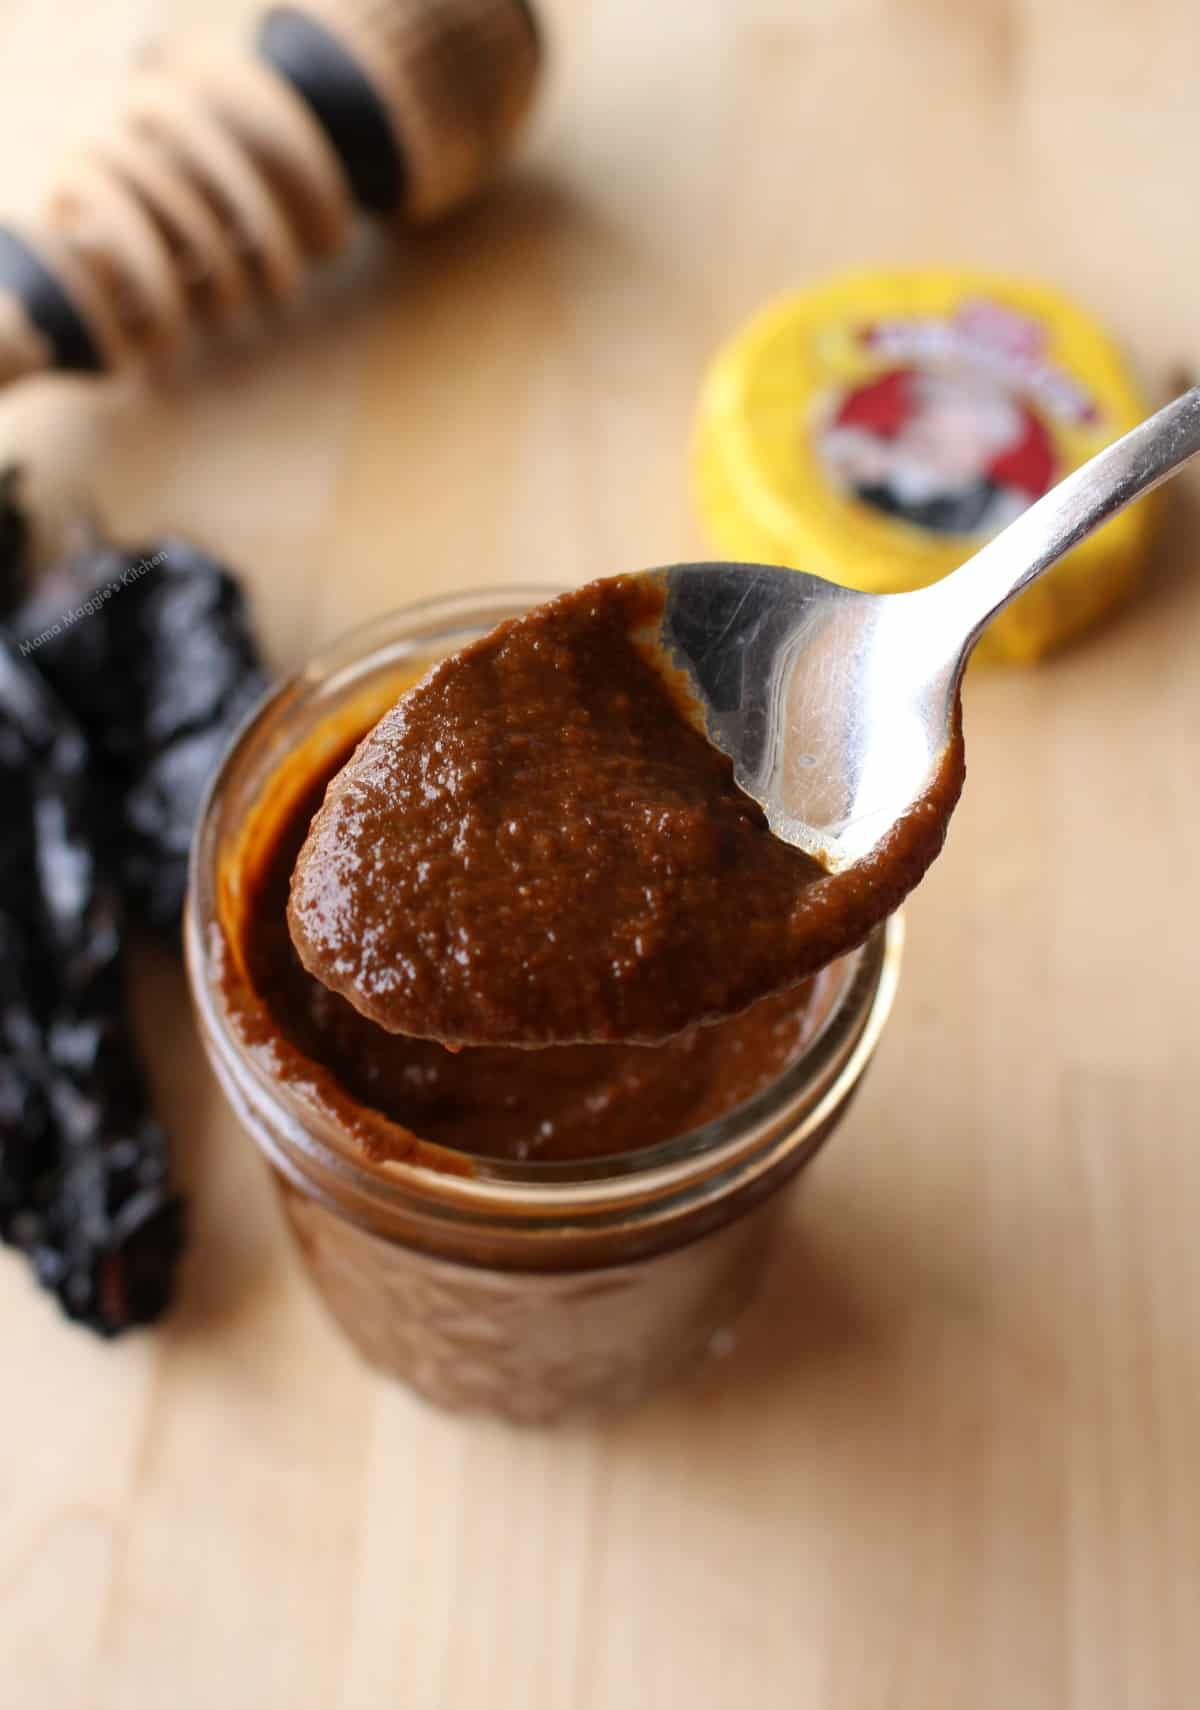 A spoon showing the mole sauce over a jar.